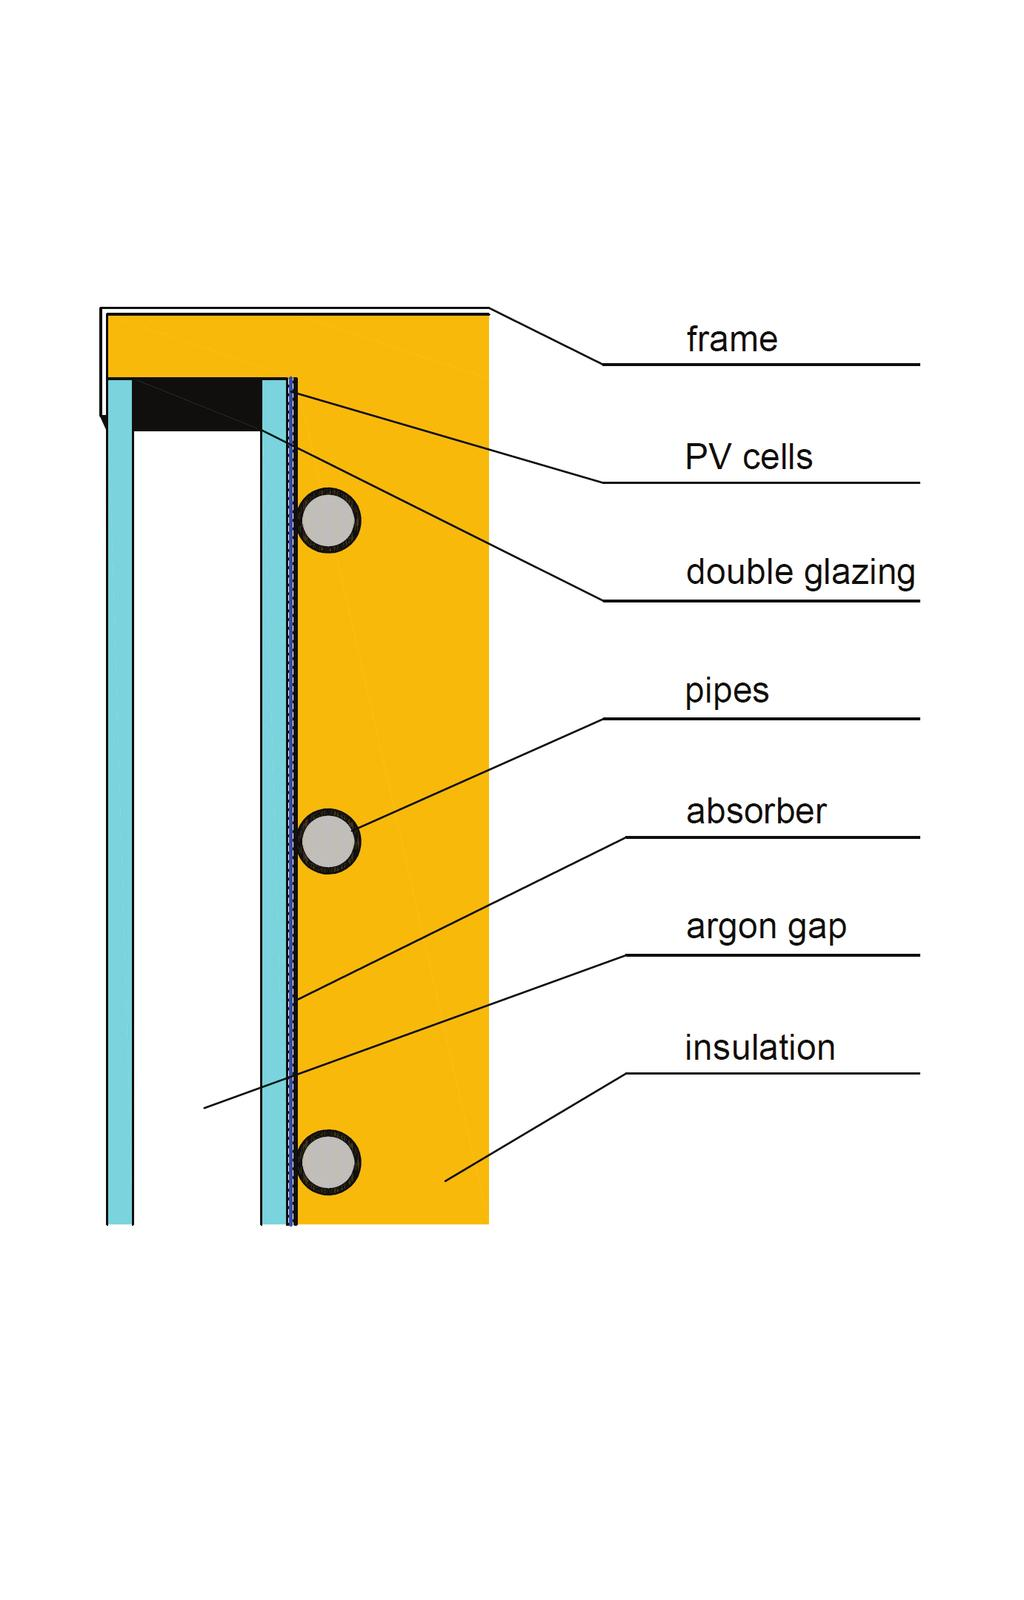 The PV part of the collector has 60 cells at size 125 x 125 mm in three parallel strings. The PV cell nominal efficiency is 17 % under STC (standard test conditions, i. e. reference temperature 25 C and solar irradiance 1000 W/m 2 ).